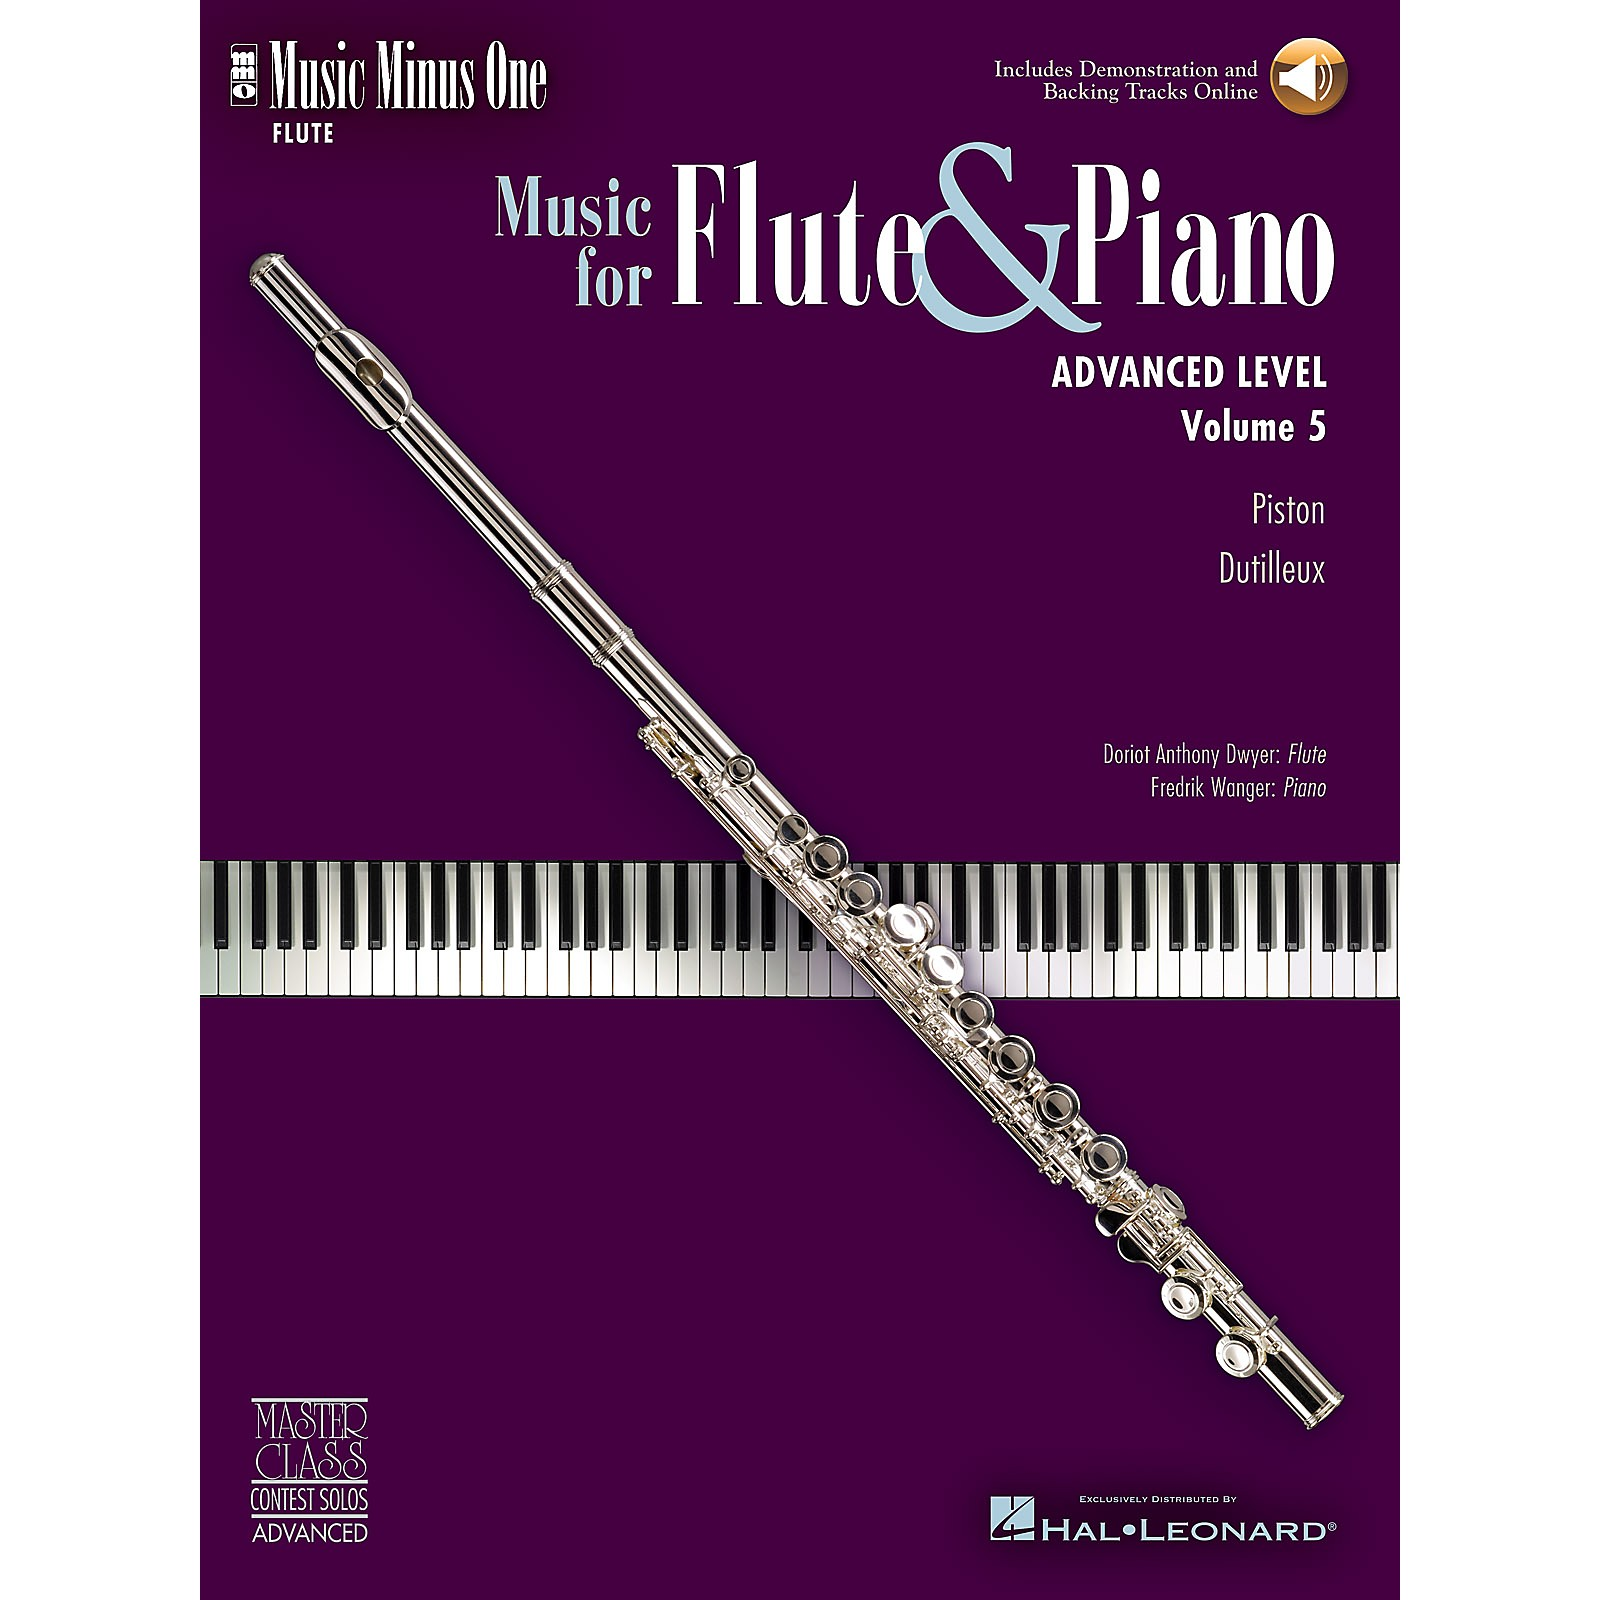 Music Minus One Advanced Flute Solos - Volume 5 Music Minus One Series Softcover with CD